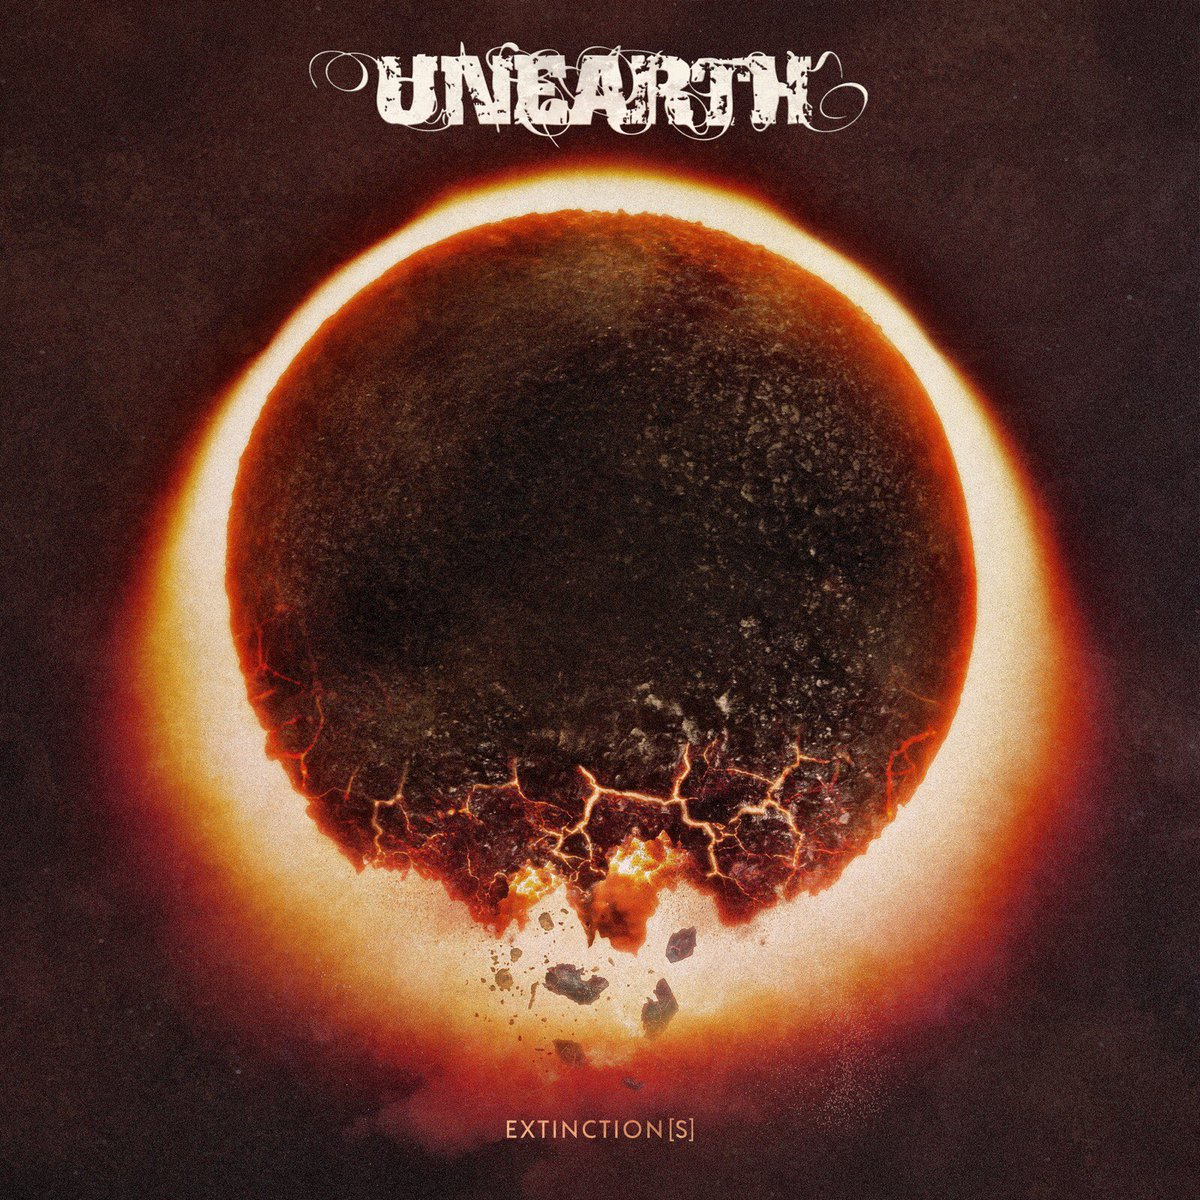 Unearth – Extinction(s) (Review)